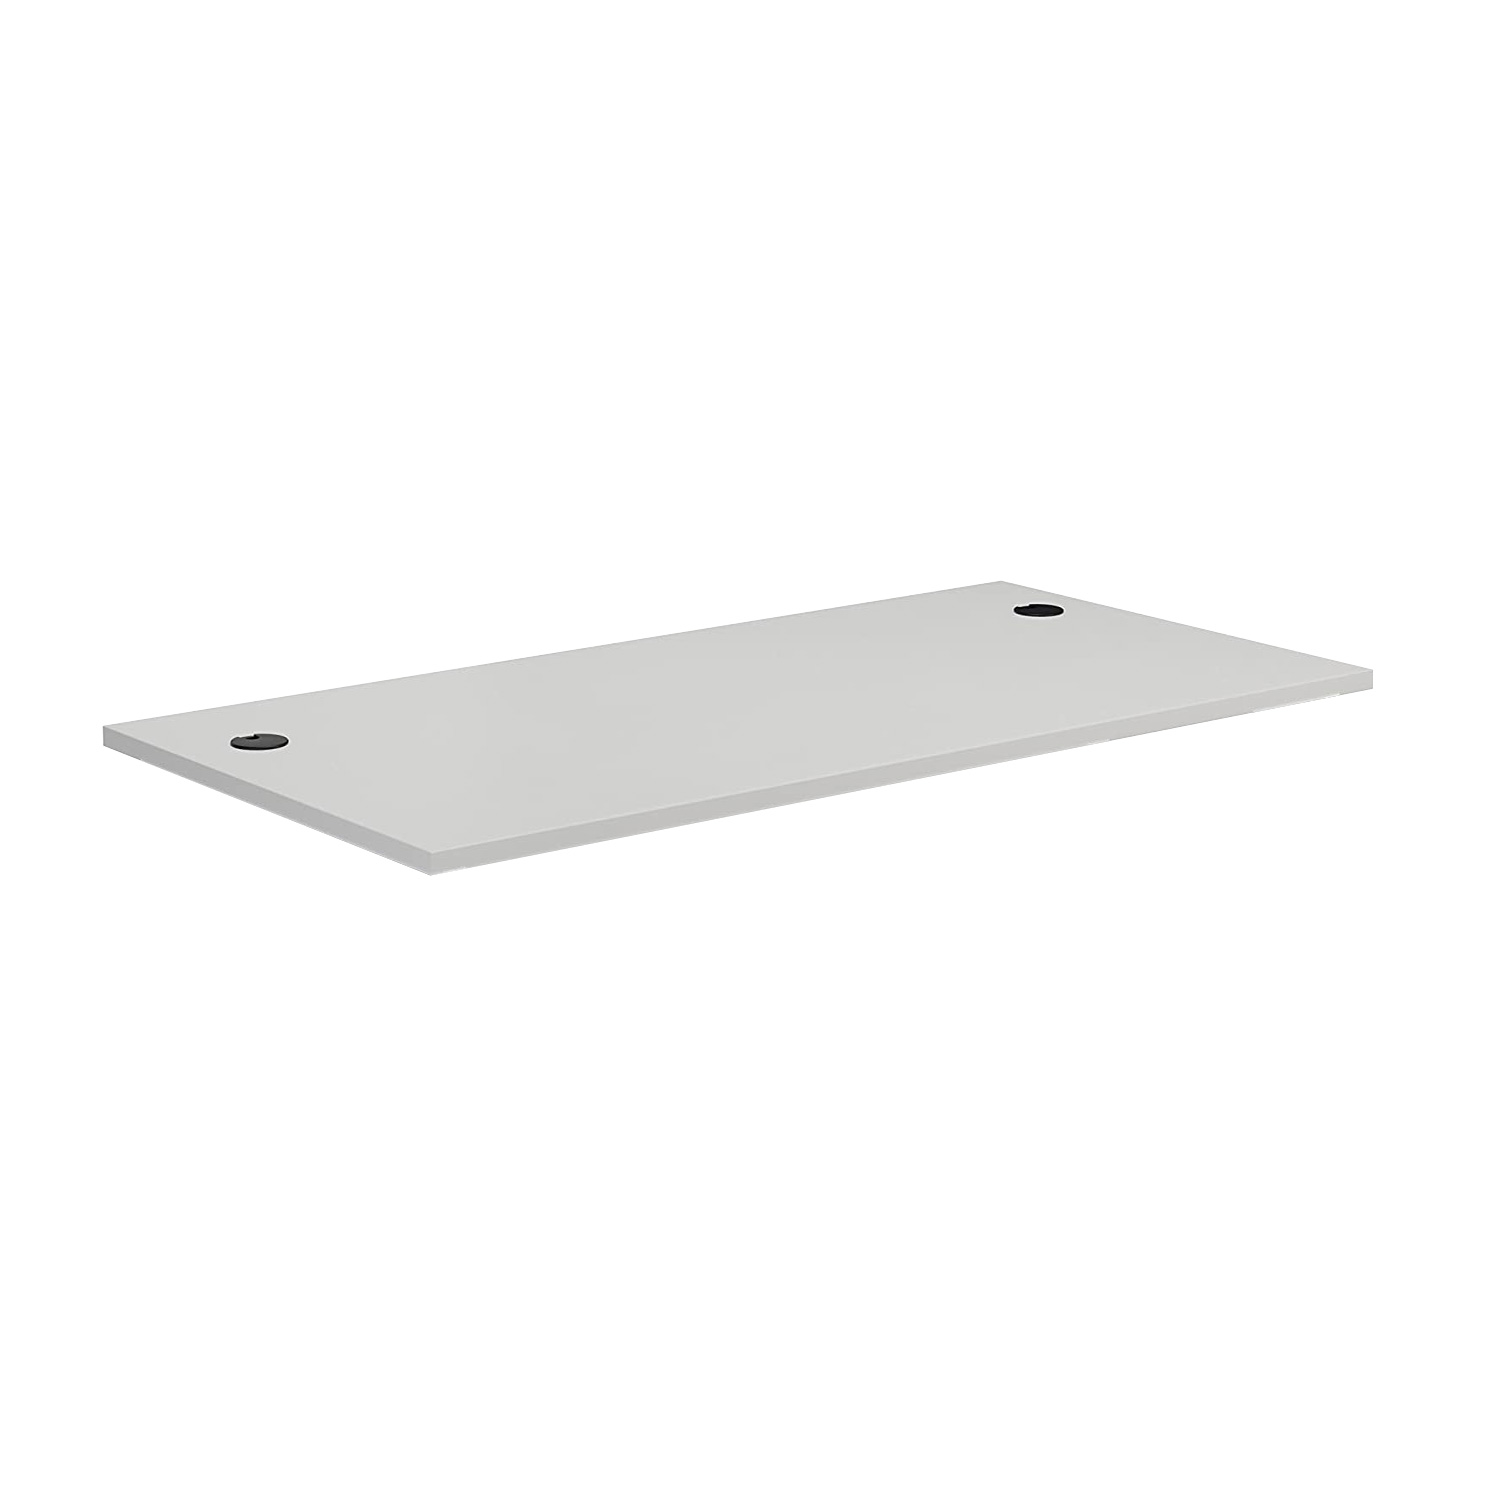 DT148CH8WH Commercial MFC Desk-top 1400x800 mm with Cable Holes in White